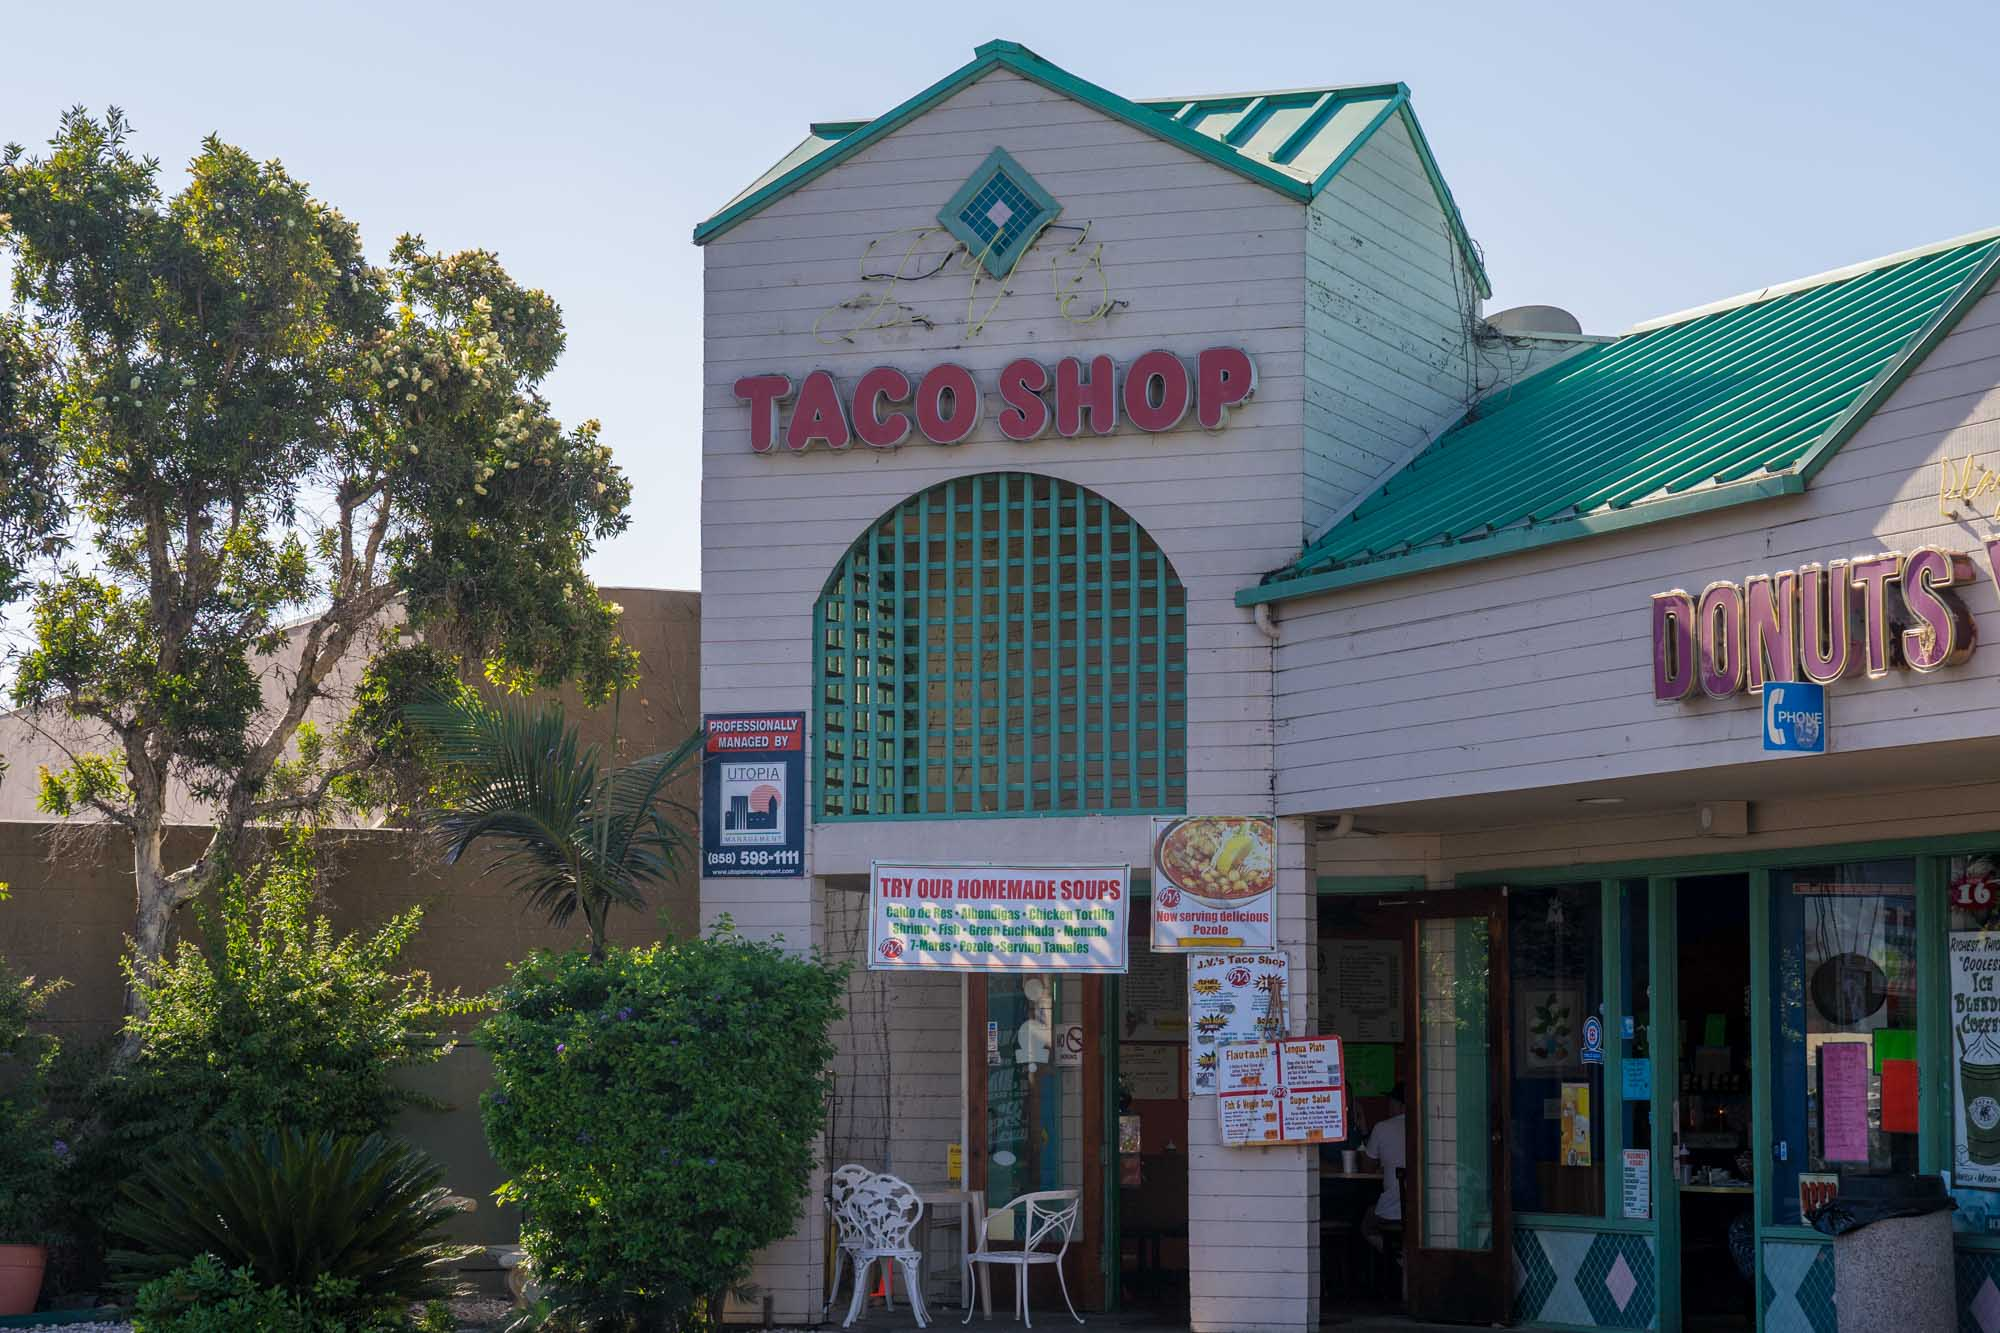 the exterior of the taco shop at JVs Mexican food in San Diego for Dirt Road Travels